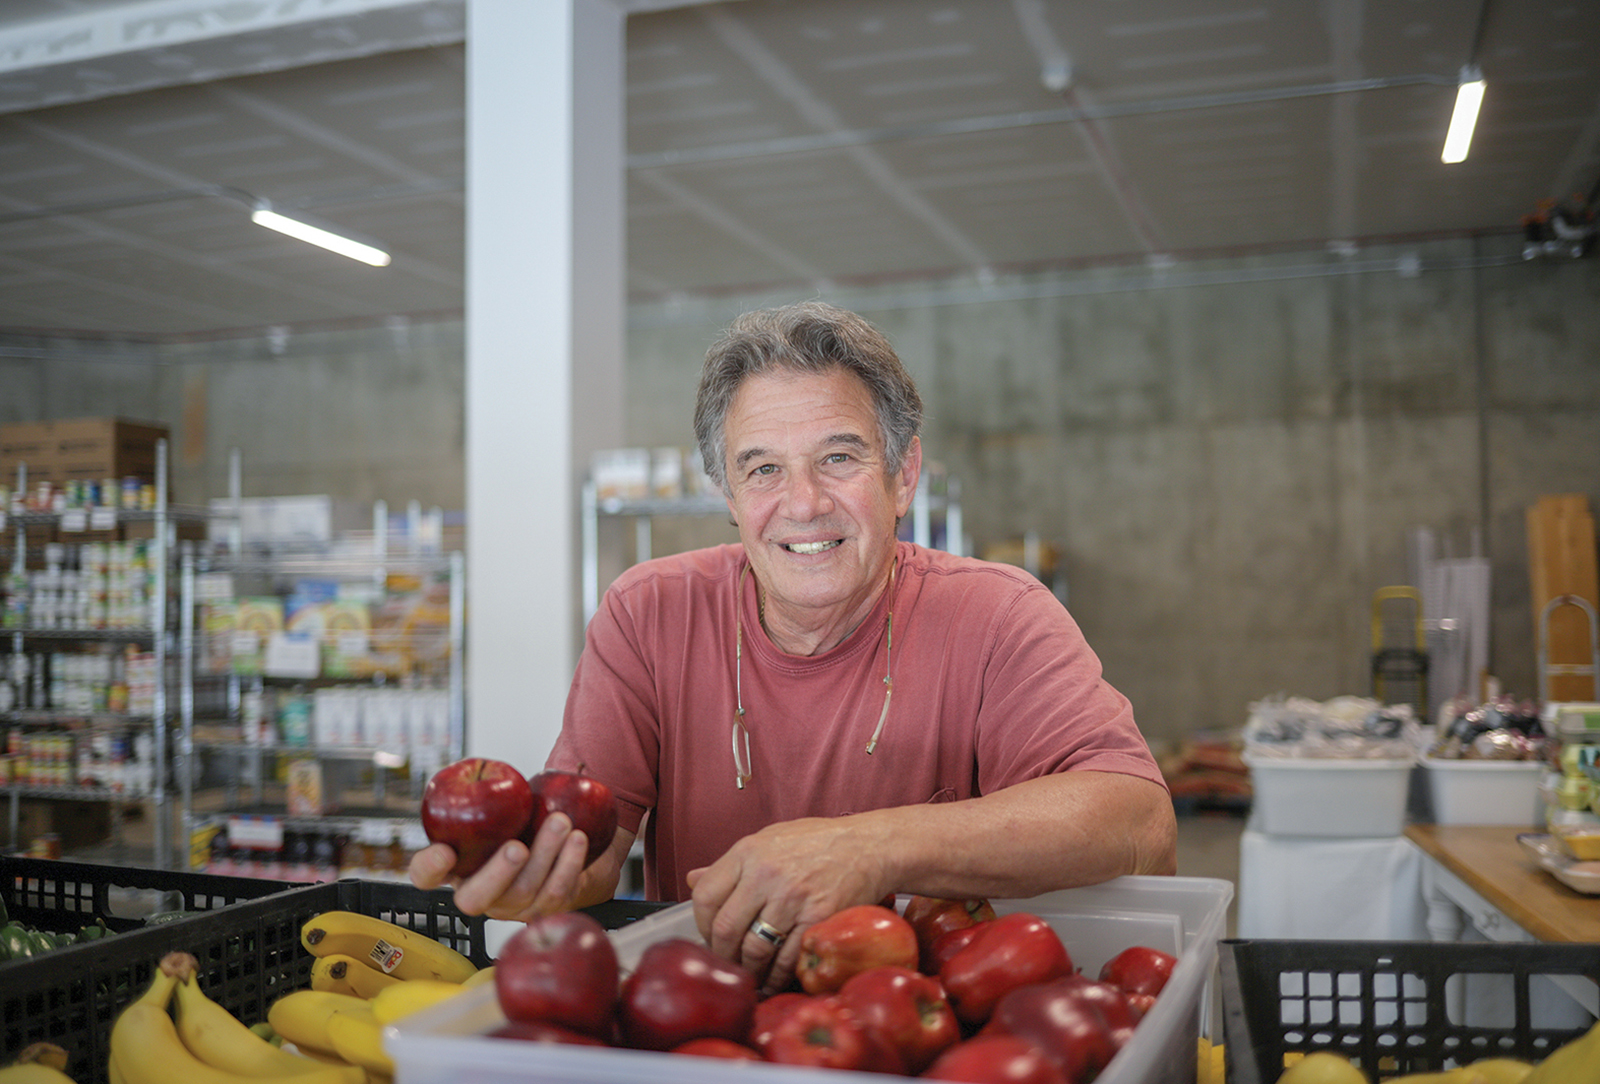 Marty Rosenfield, Food Pantry of Highlands